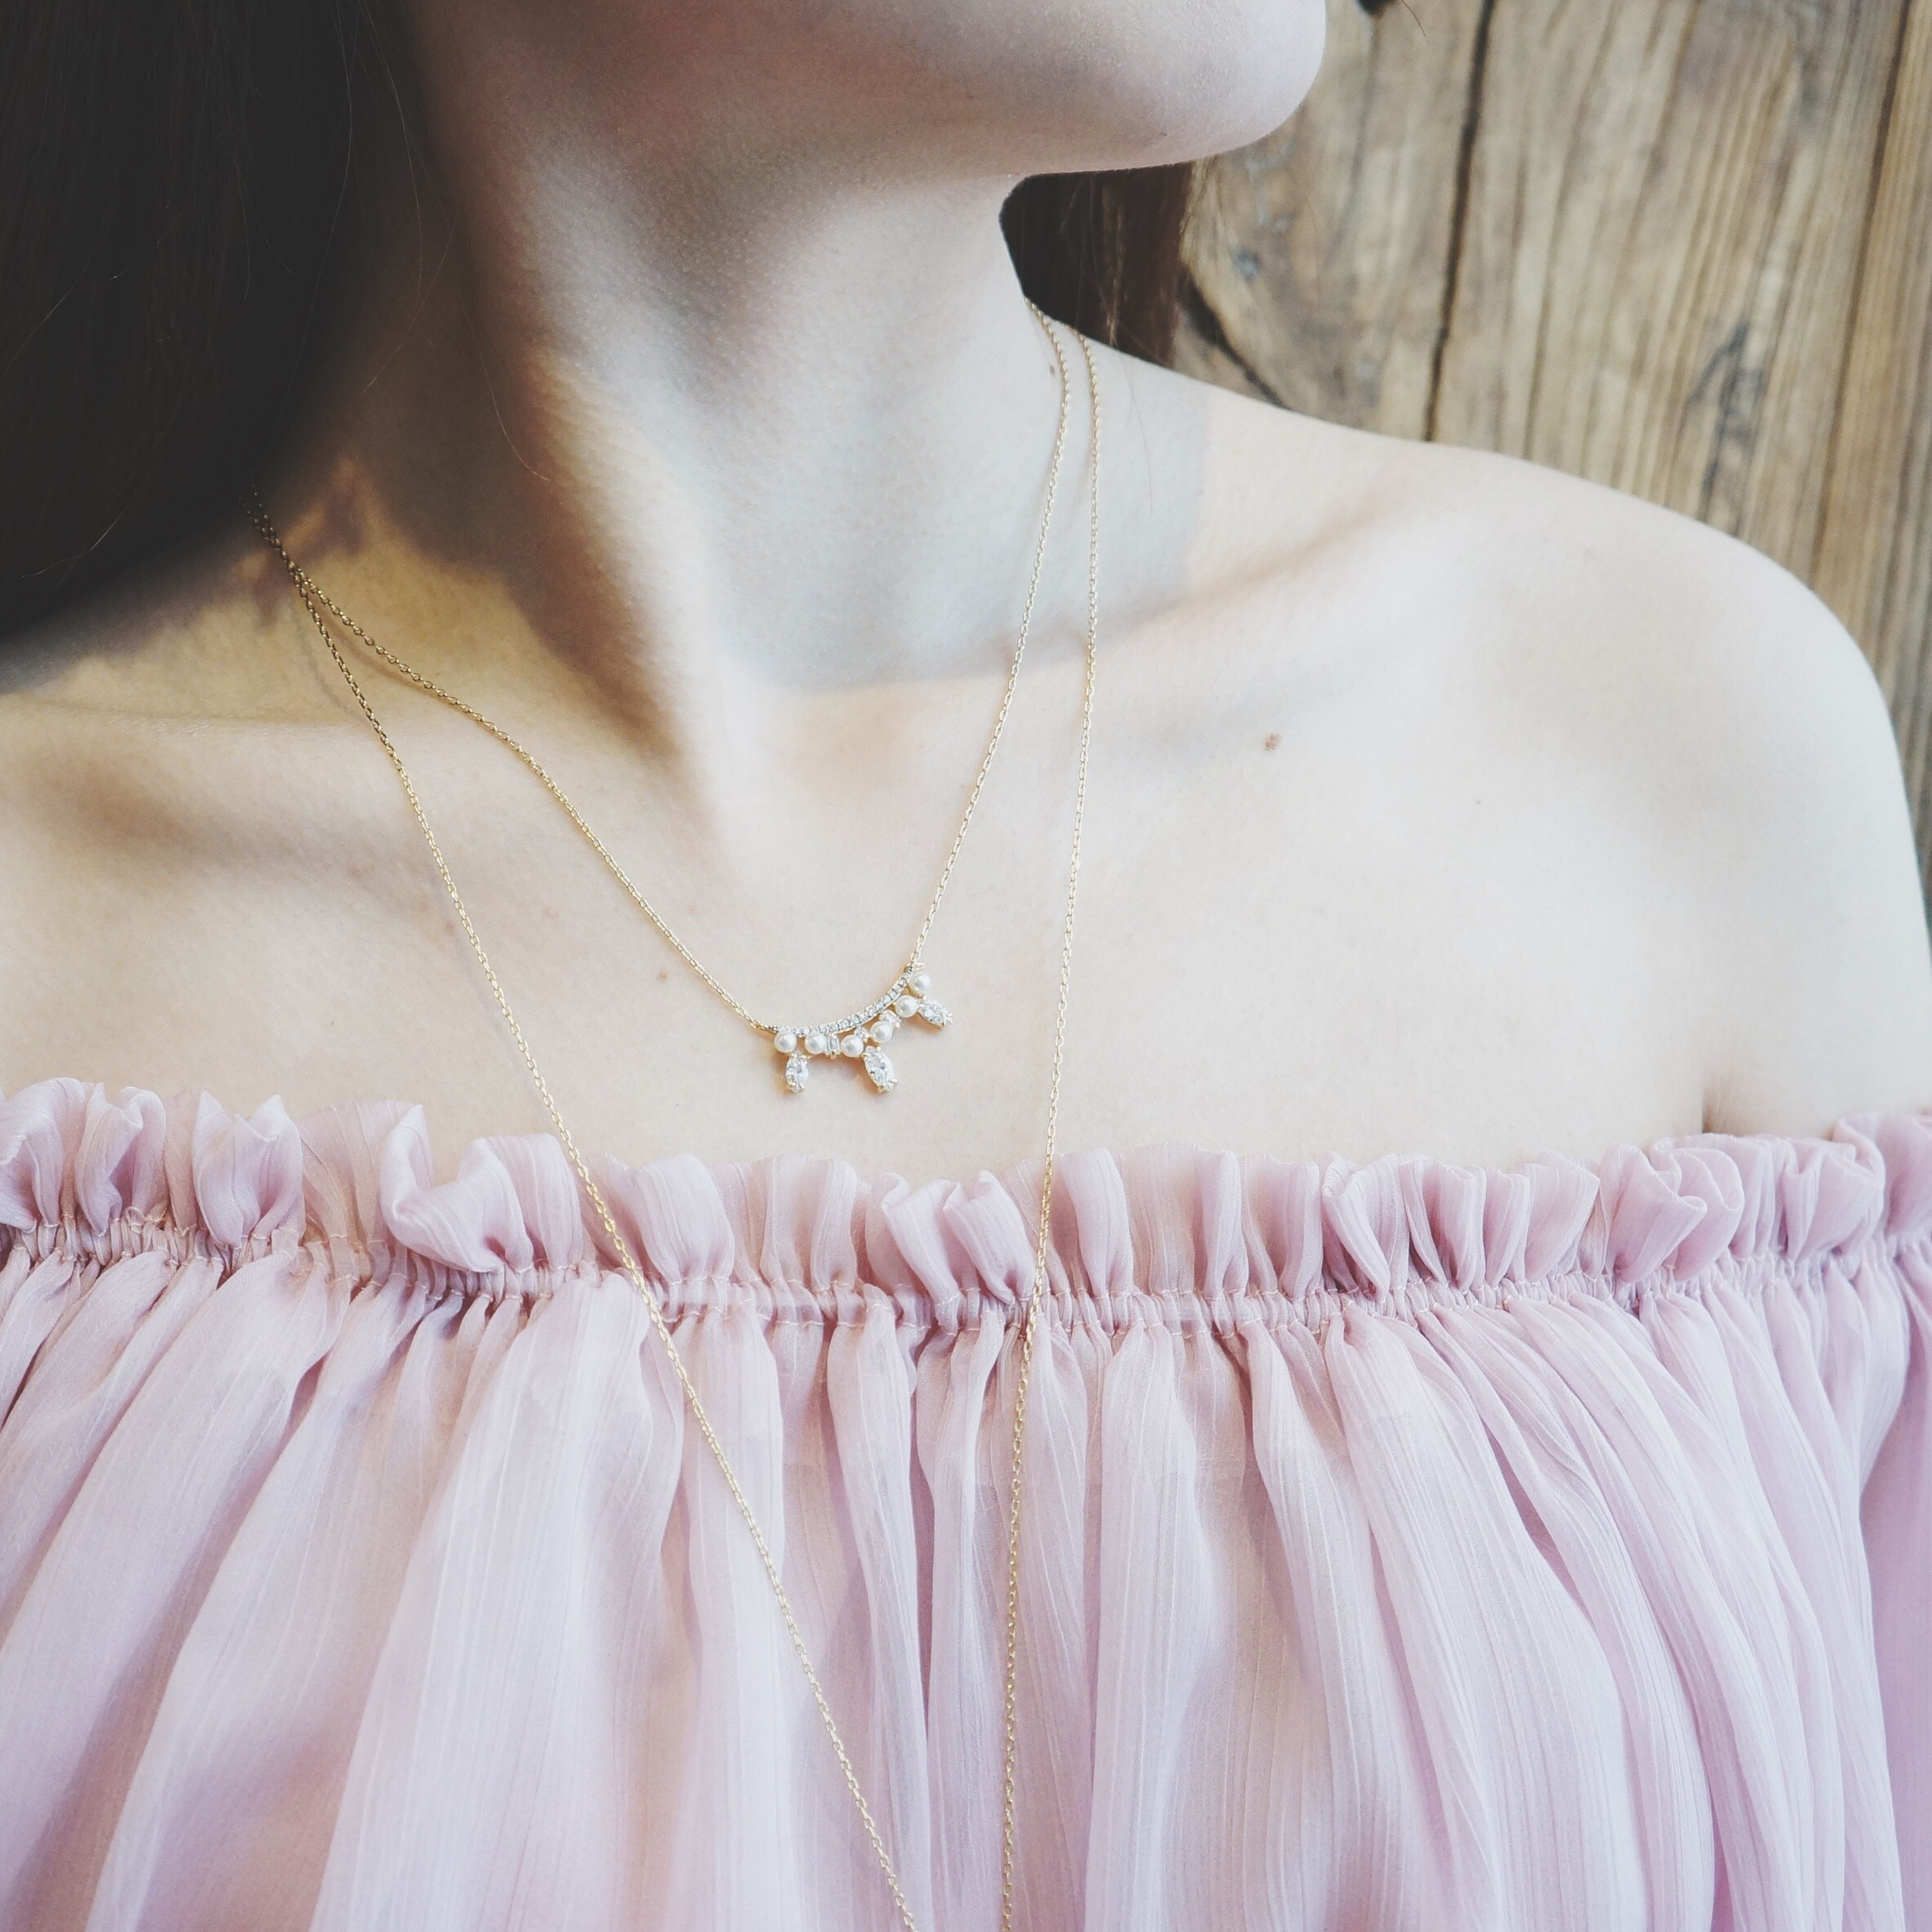 necklace, midsection, one woman only, adults only, fashion, only women, close-up, hanging, indoors, one person, jewelry, day, adult, people, wedding dress, human body part